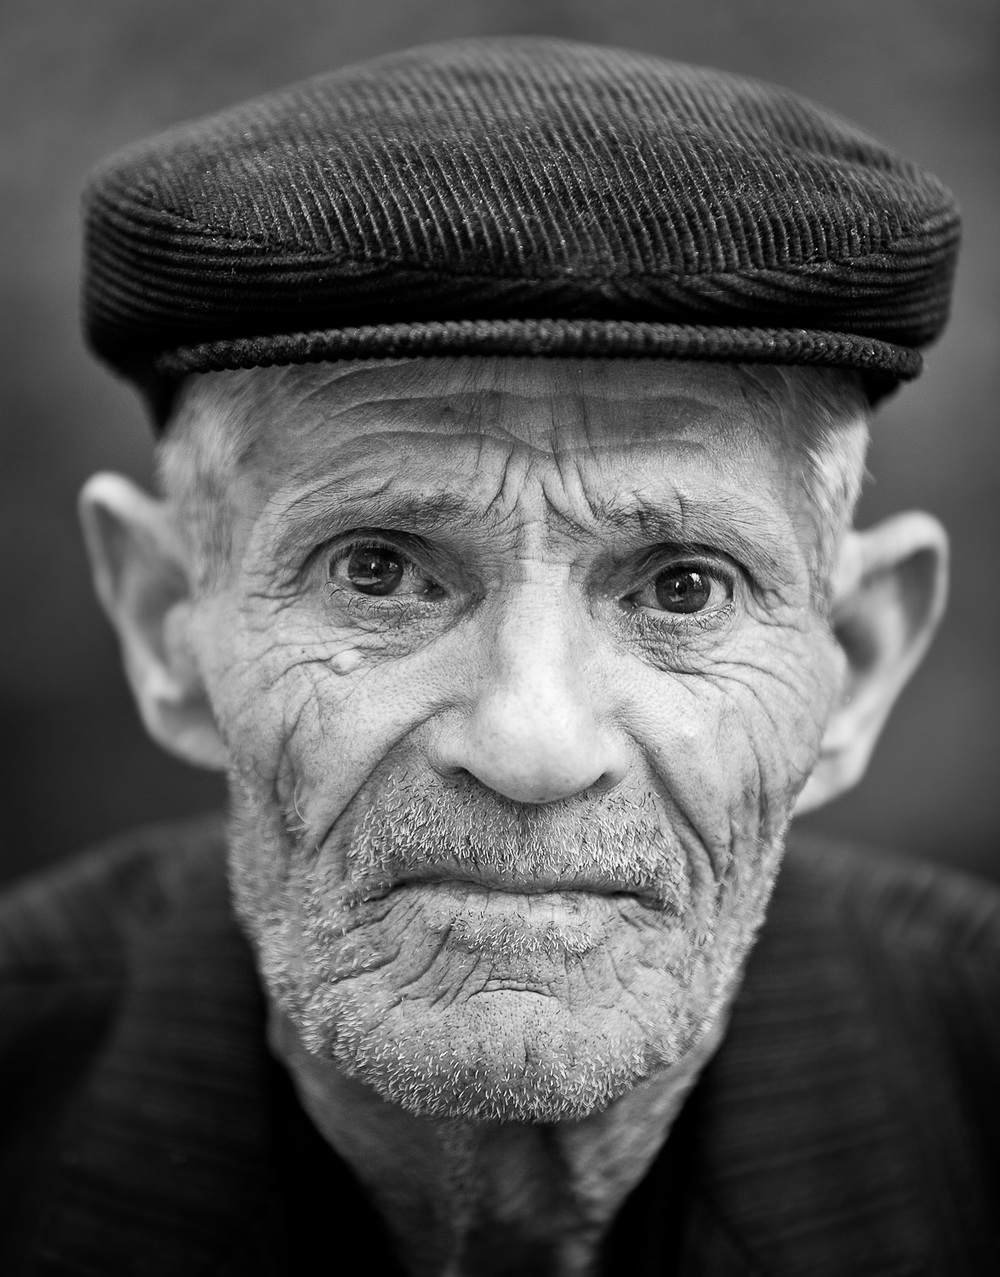 elderly man portrait - photo #23